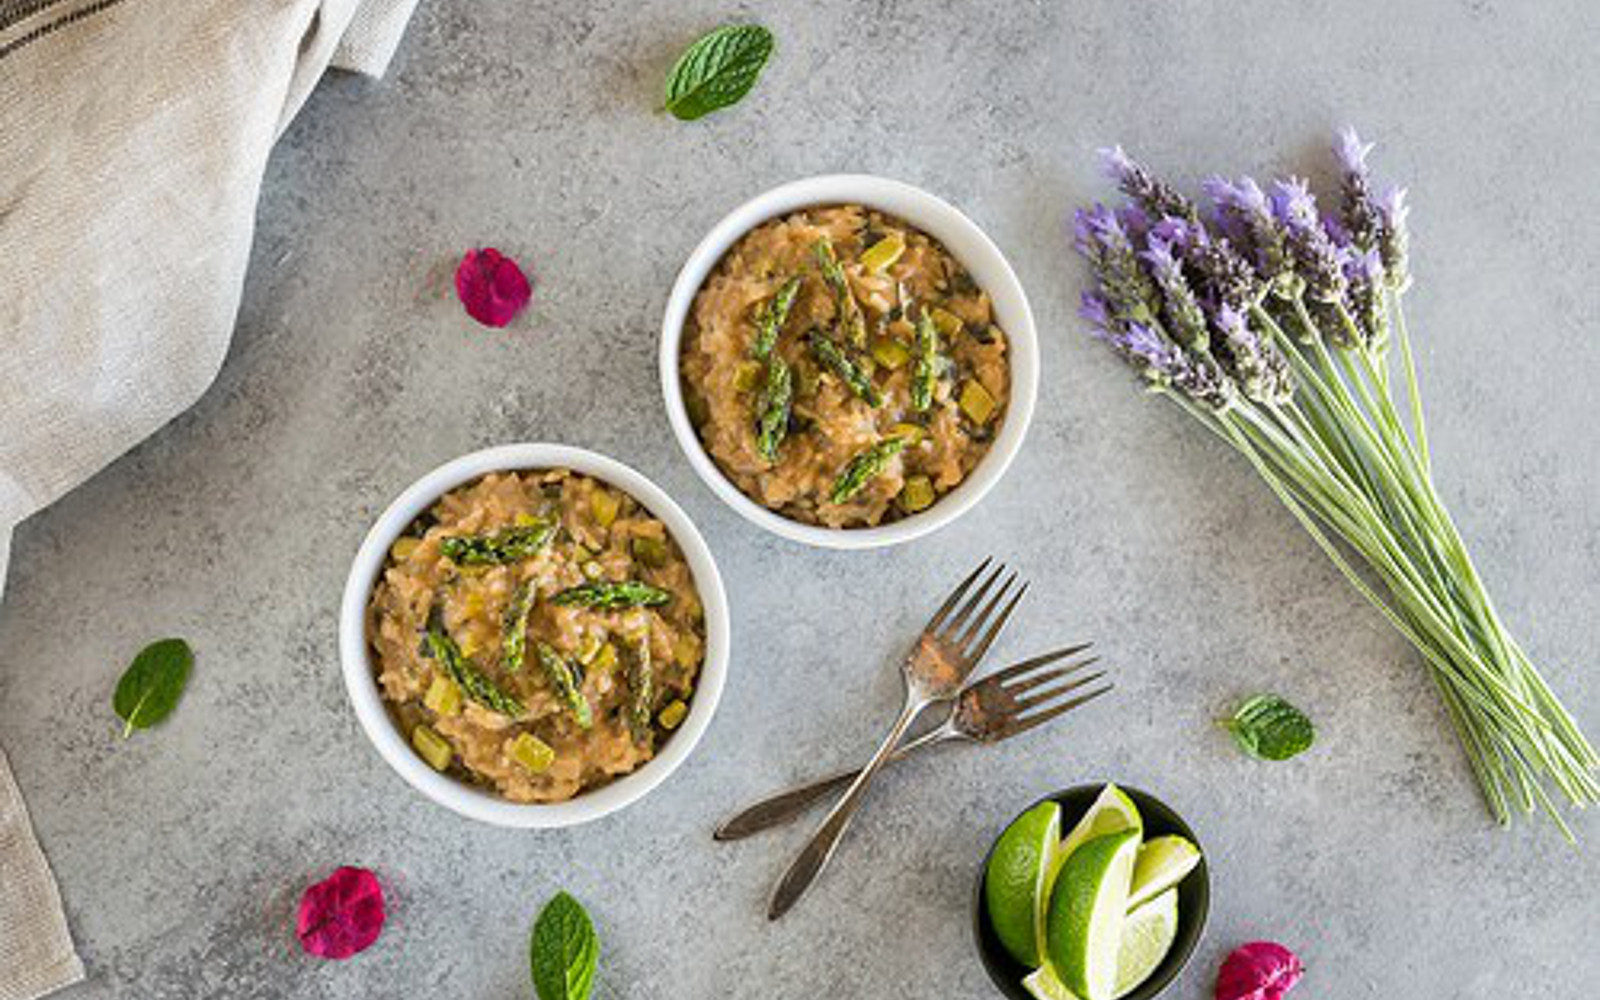 Vegan Asparagus Risotto With Lemongrass and Thai Basil